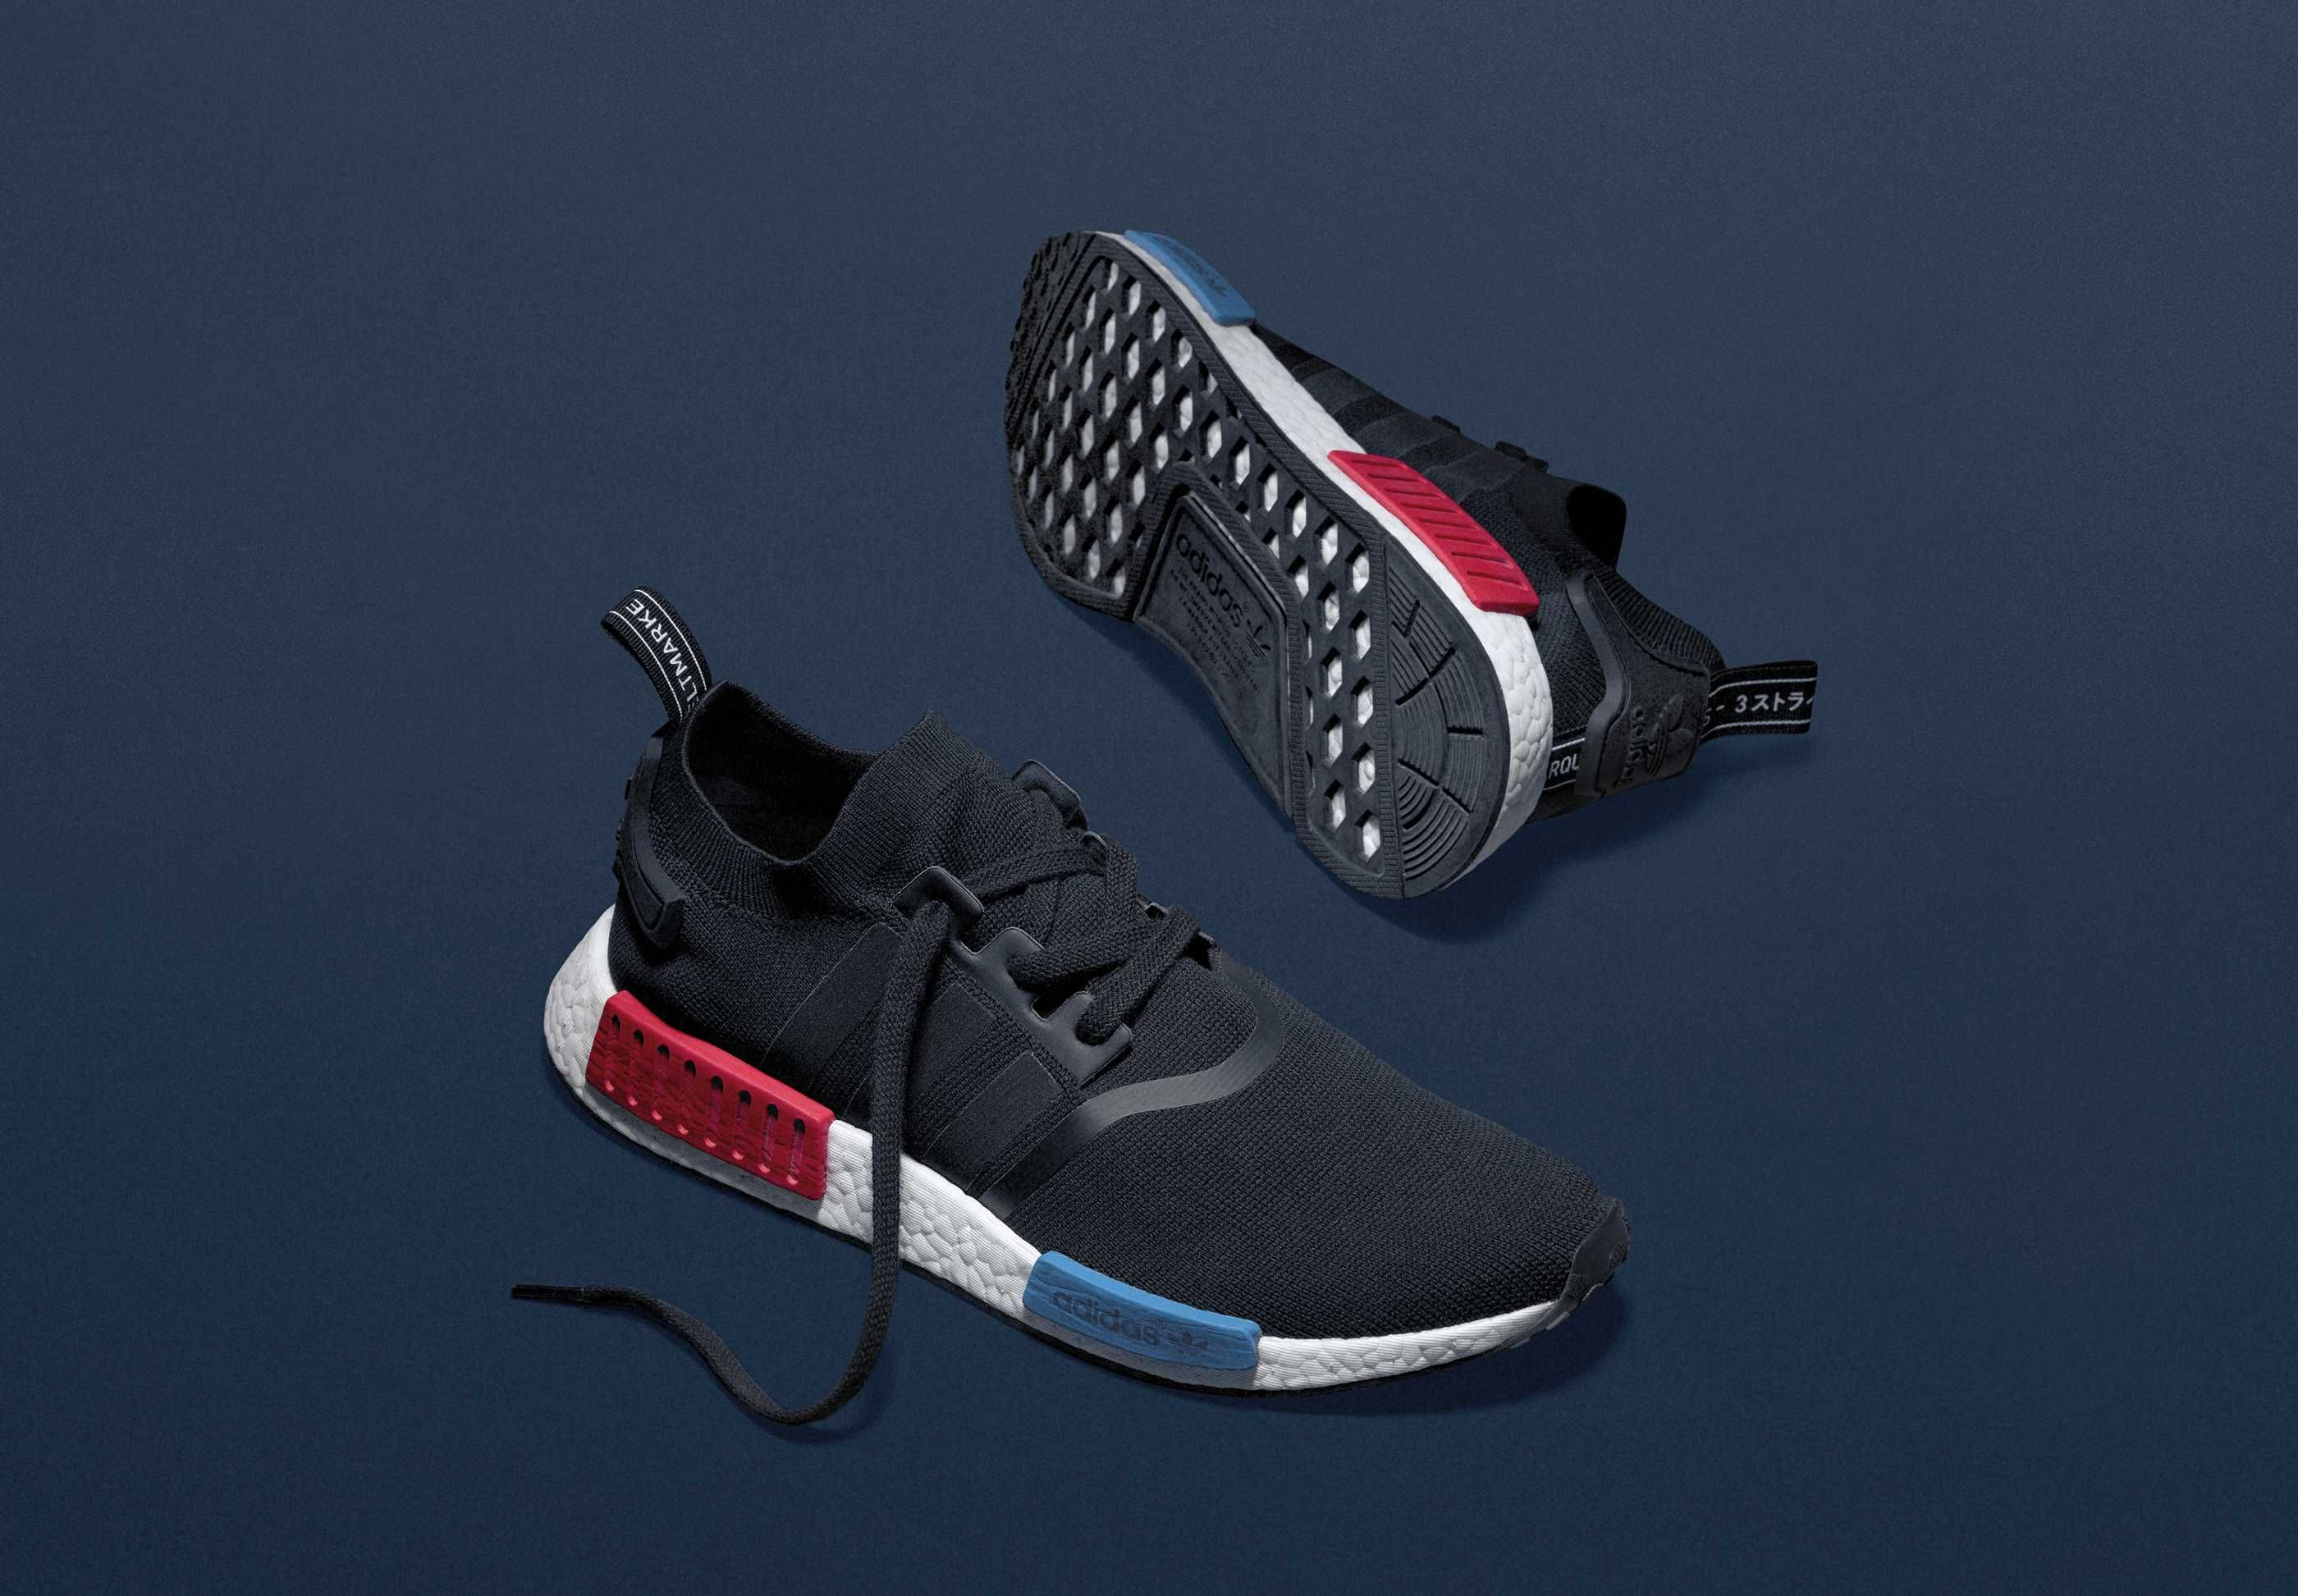 The First Ever Adidas Nmd R1 Colorway Is Set To Return Adidas Nmd Black Adidas Nmd Adidas Originals Nmd